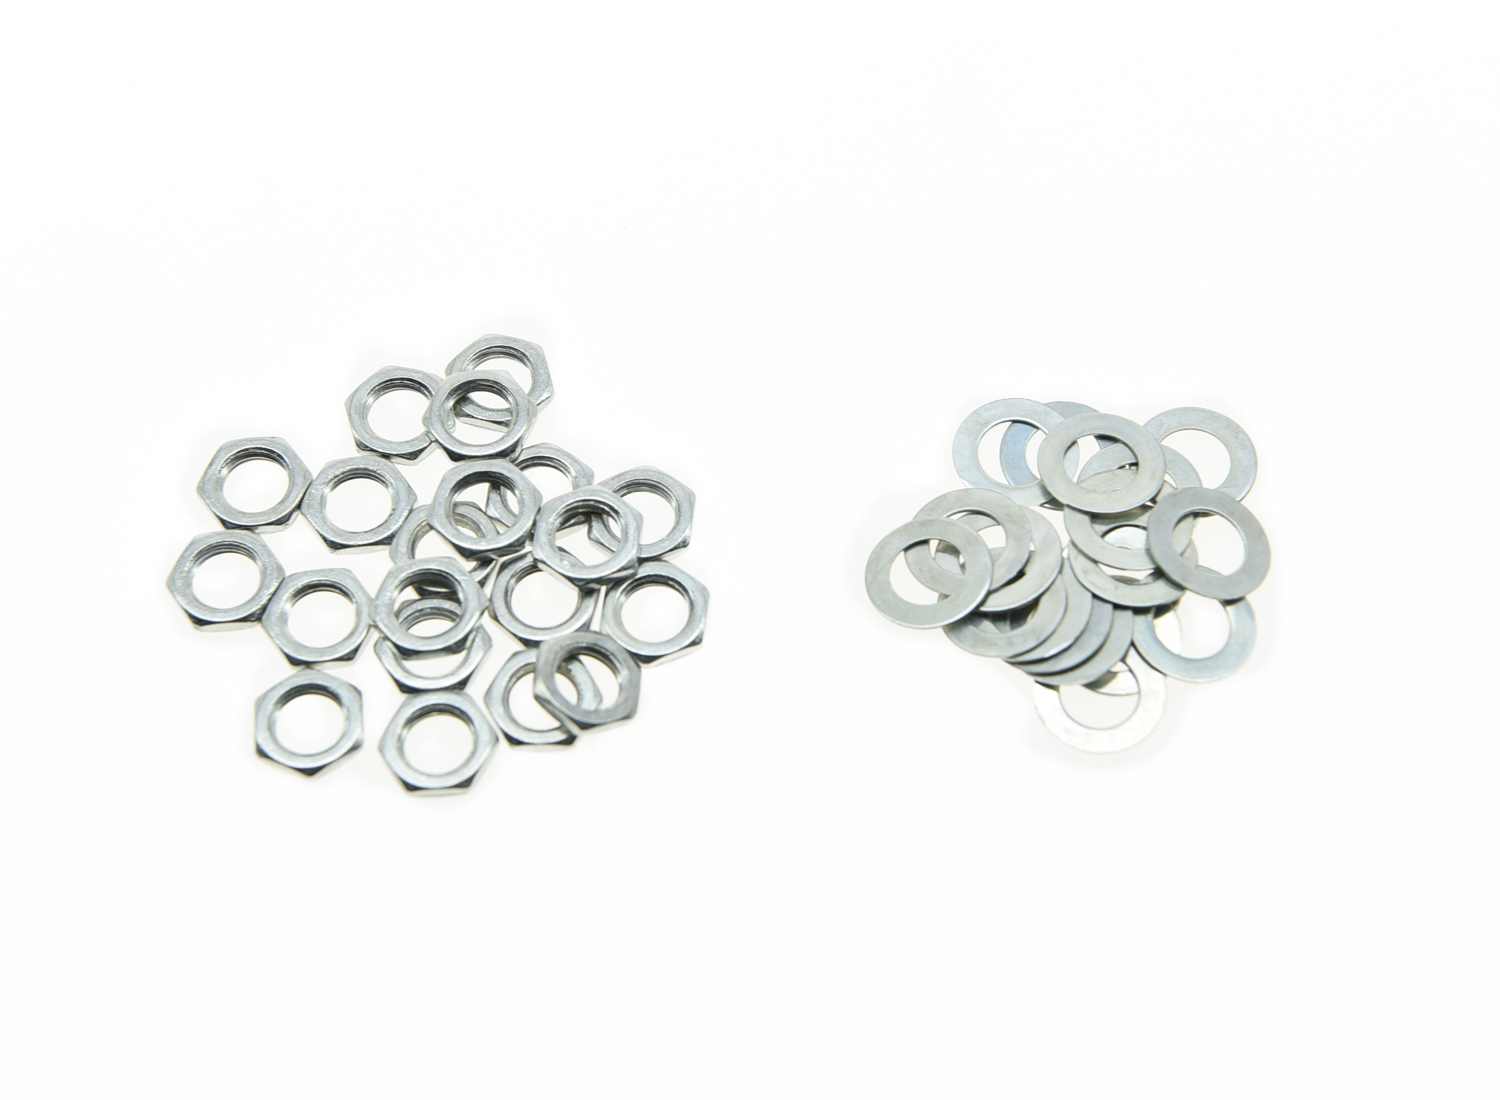 Pack of 20 Zinc Metric M7 Guitar Pots Nuts & Washers for 16mm Mini Metric Pots